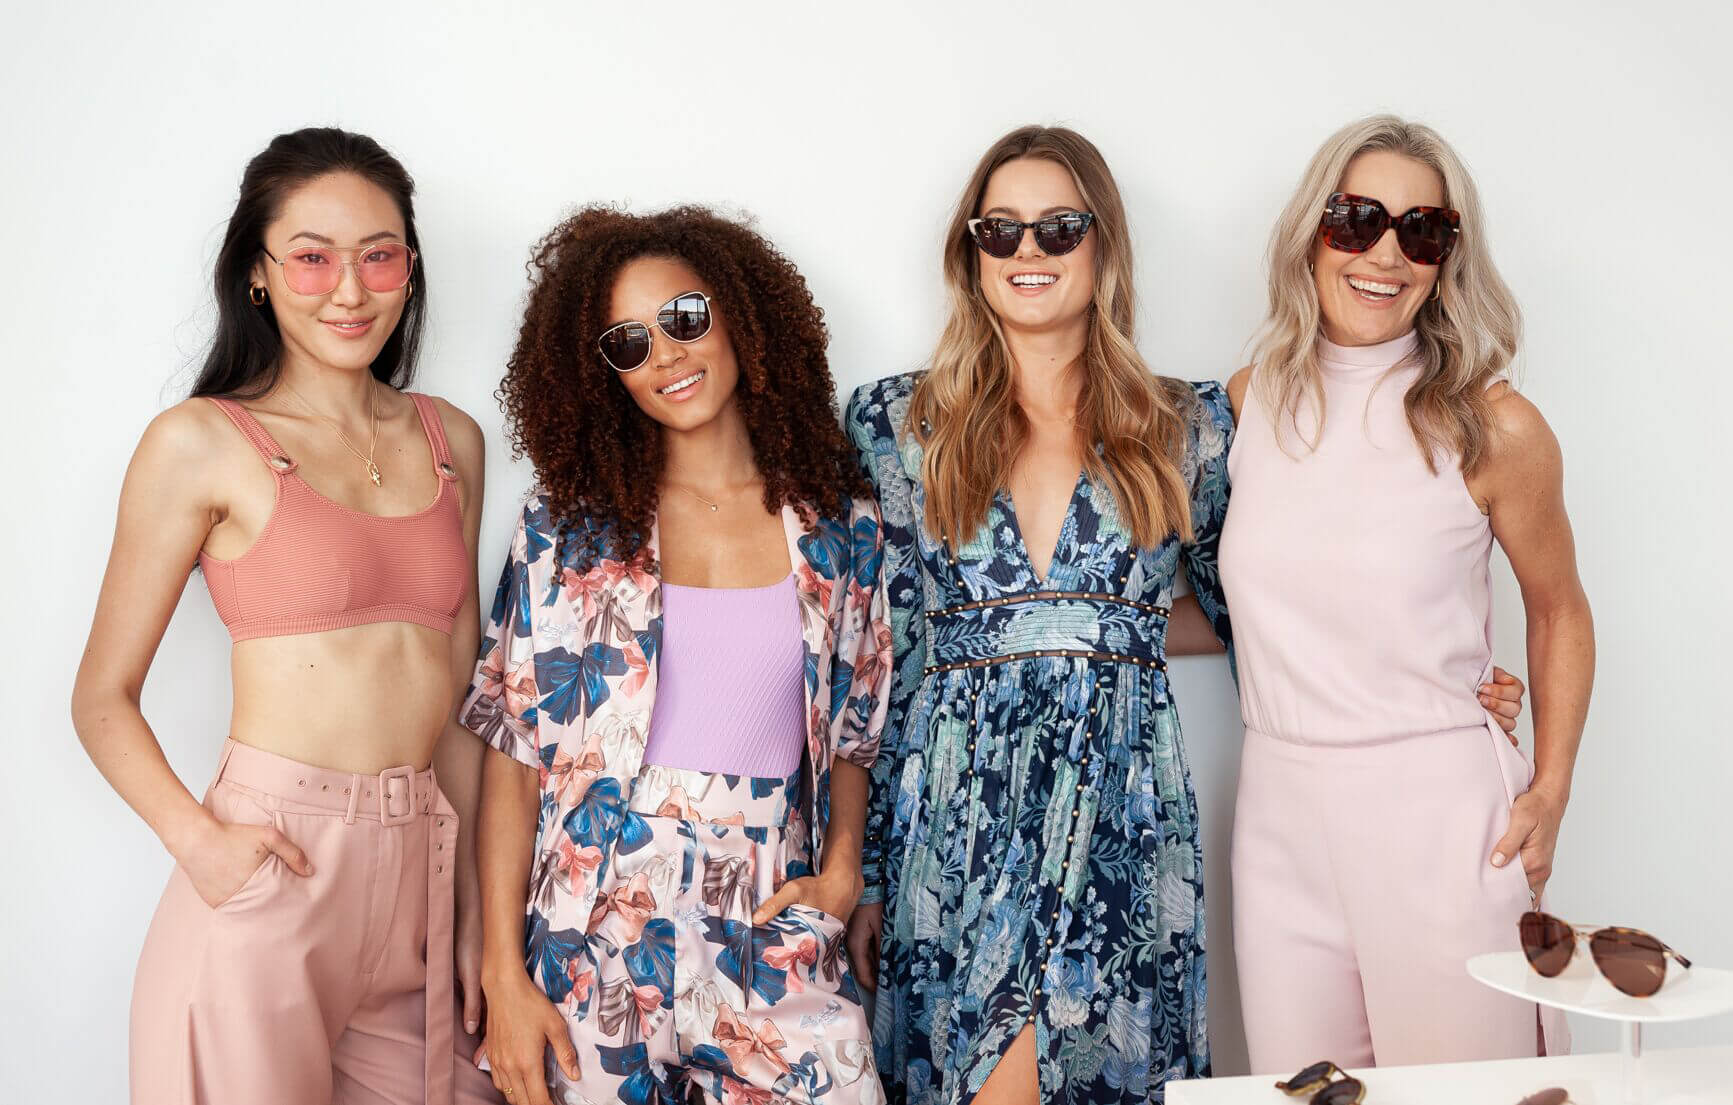 Women in floral dresses wearing sunglasses